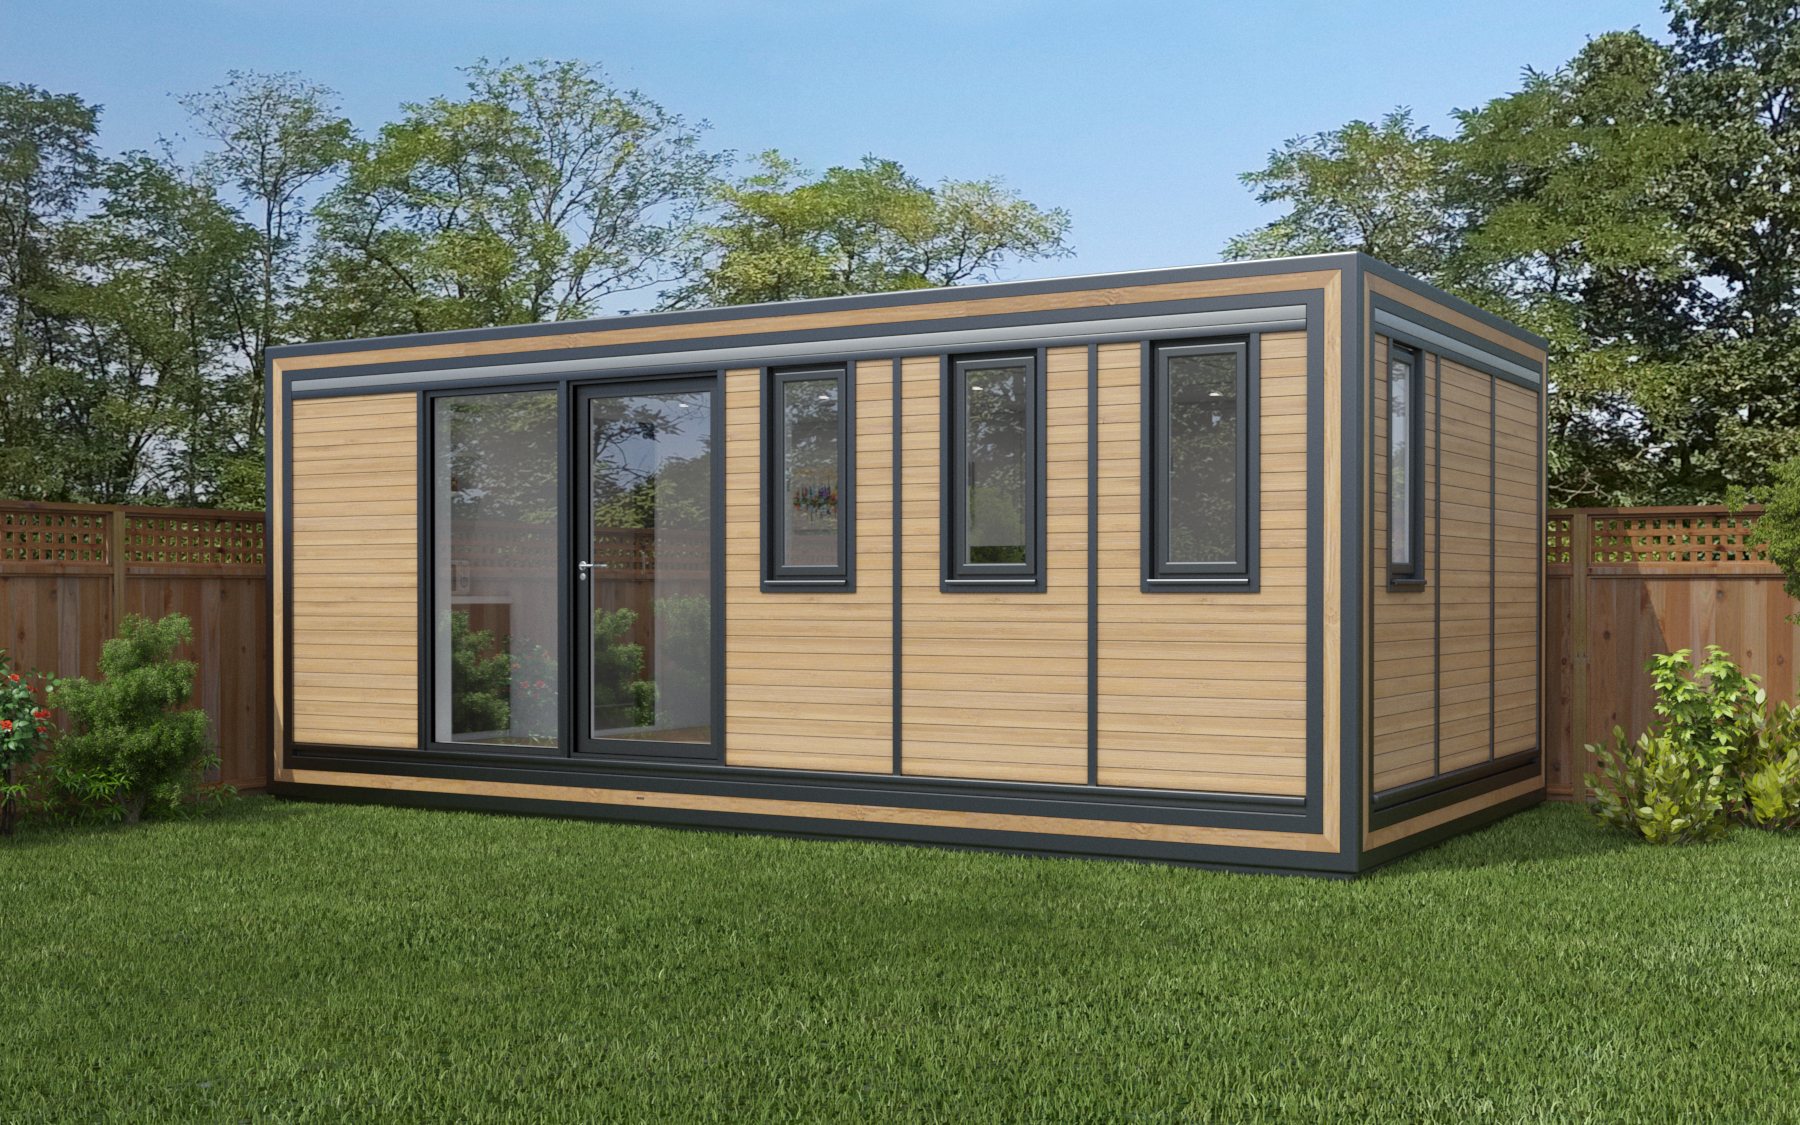 ZEDBOX 630  (6 x 3)  Internal Size: 6401 x 3188  External Size: 6871 x 3658  Bed Options: Single or Double  Kitchen Options: Micro or Premier  Wet Room Options: Yes  Portico: No  Price:  £29,000    Optional Extras    Request Zedbox Catalogue